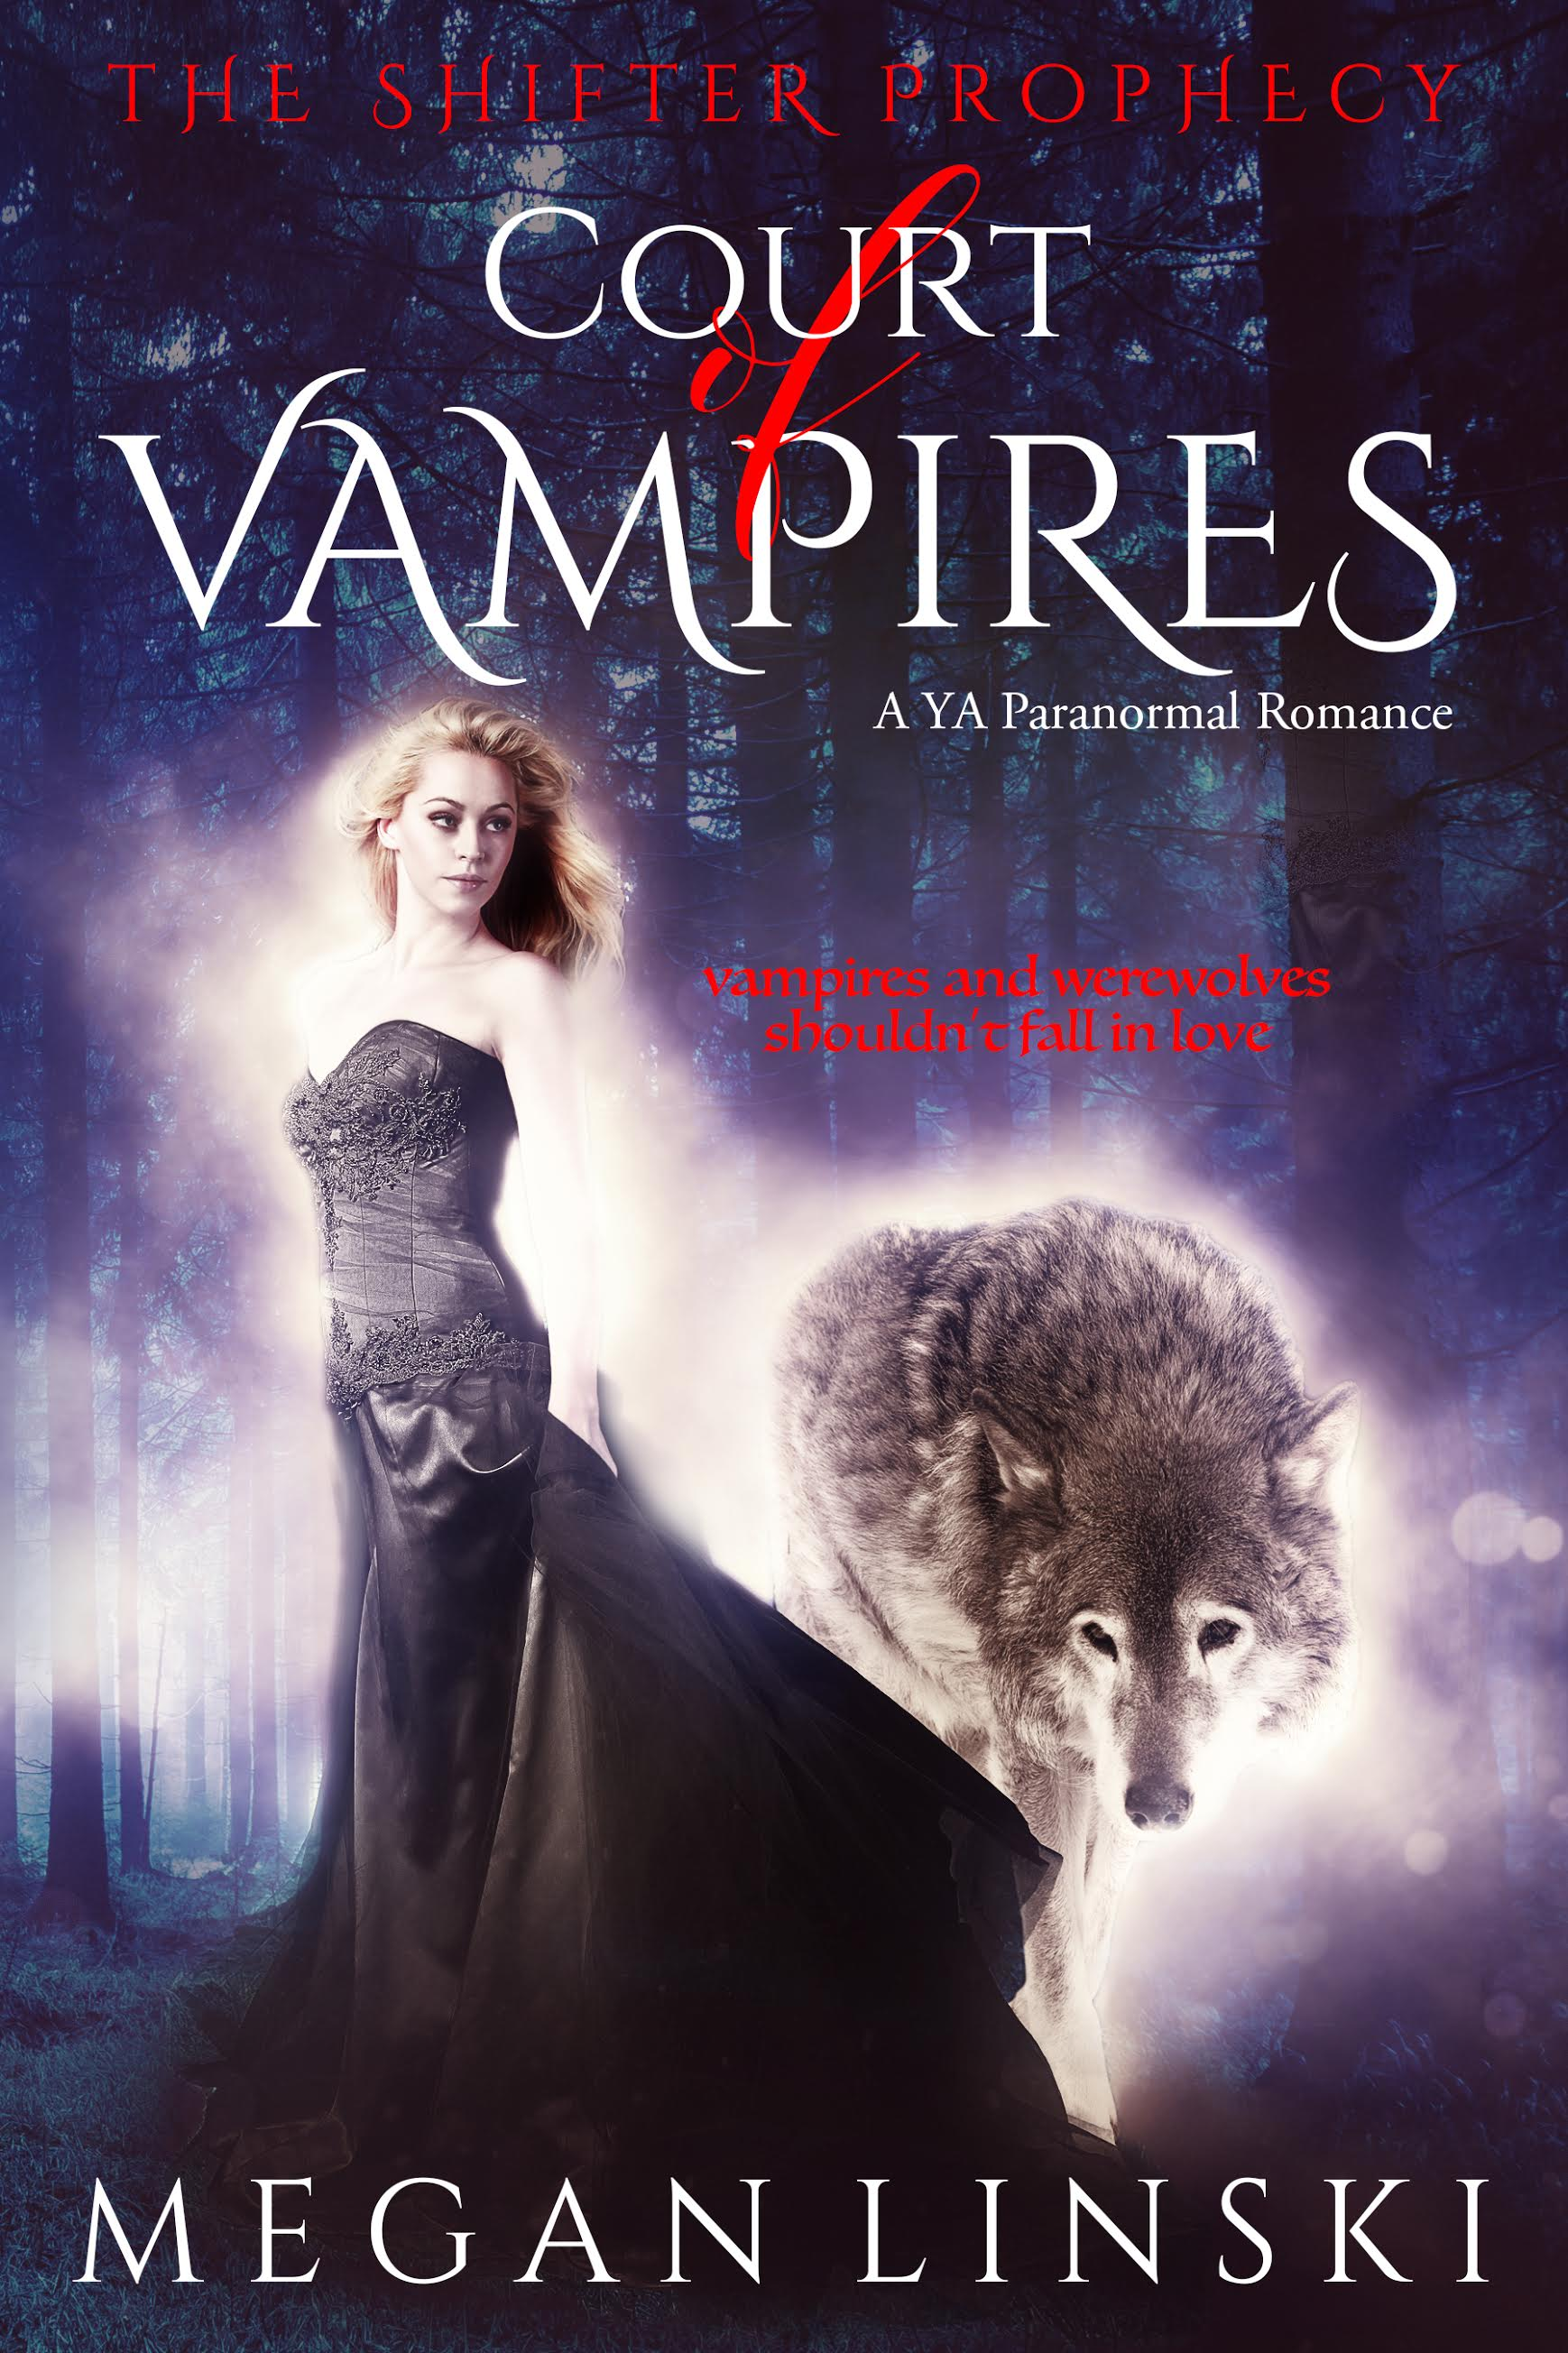 out-vampire-fiction-for-young-adults